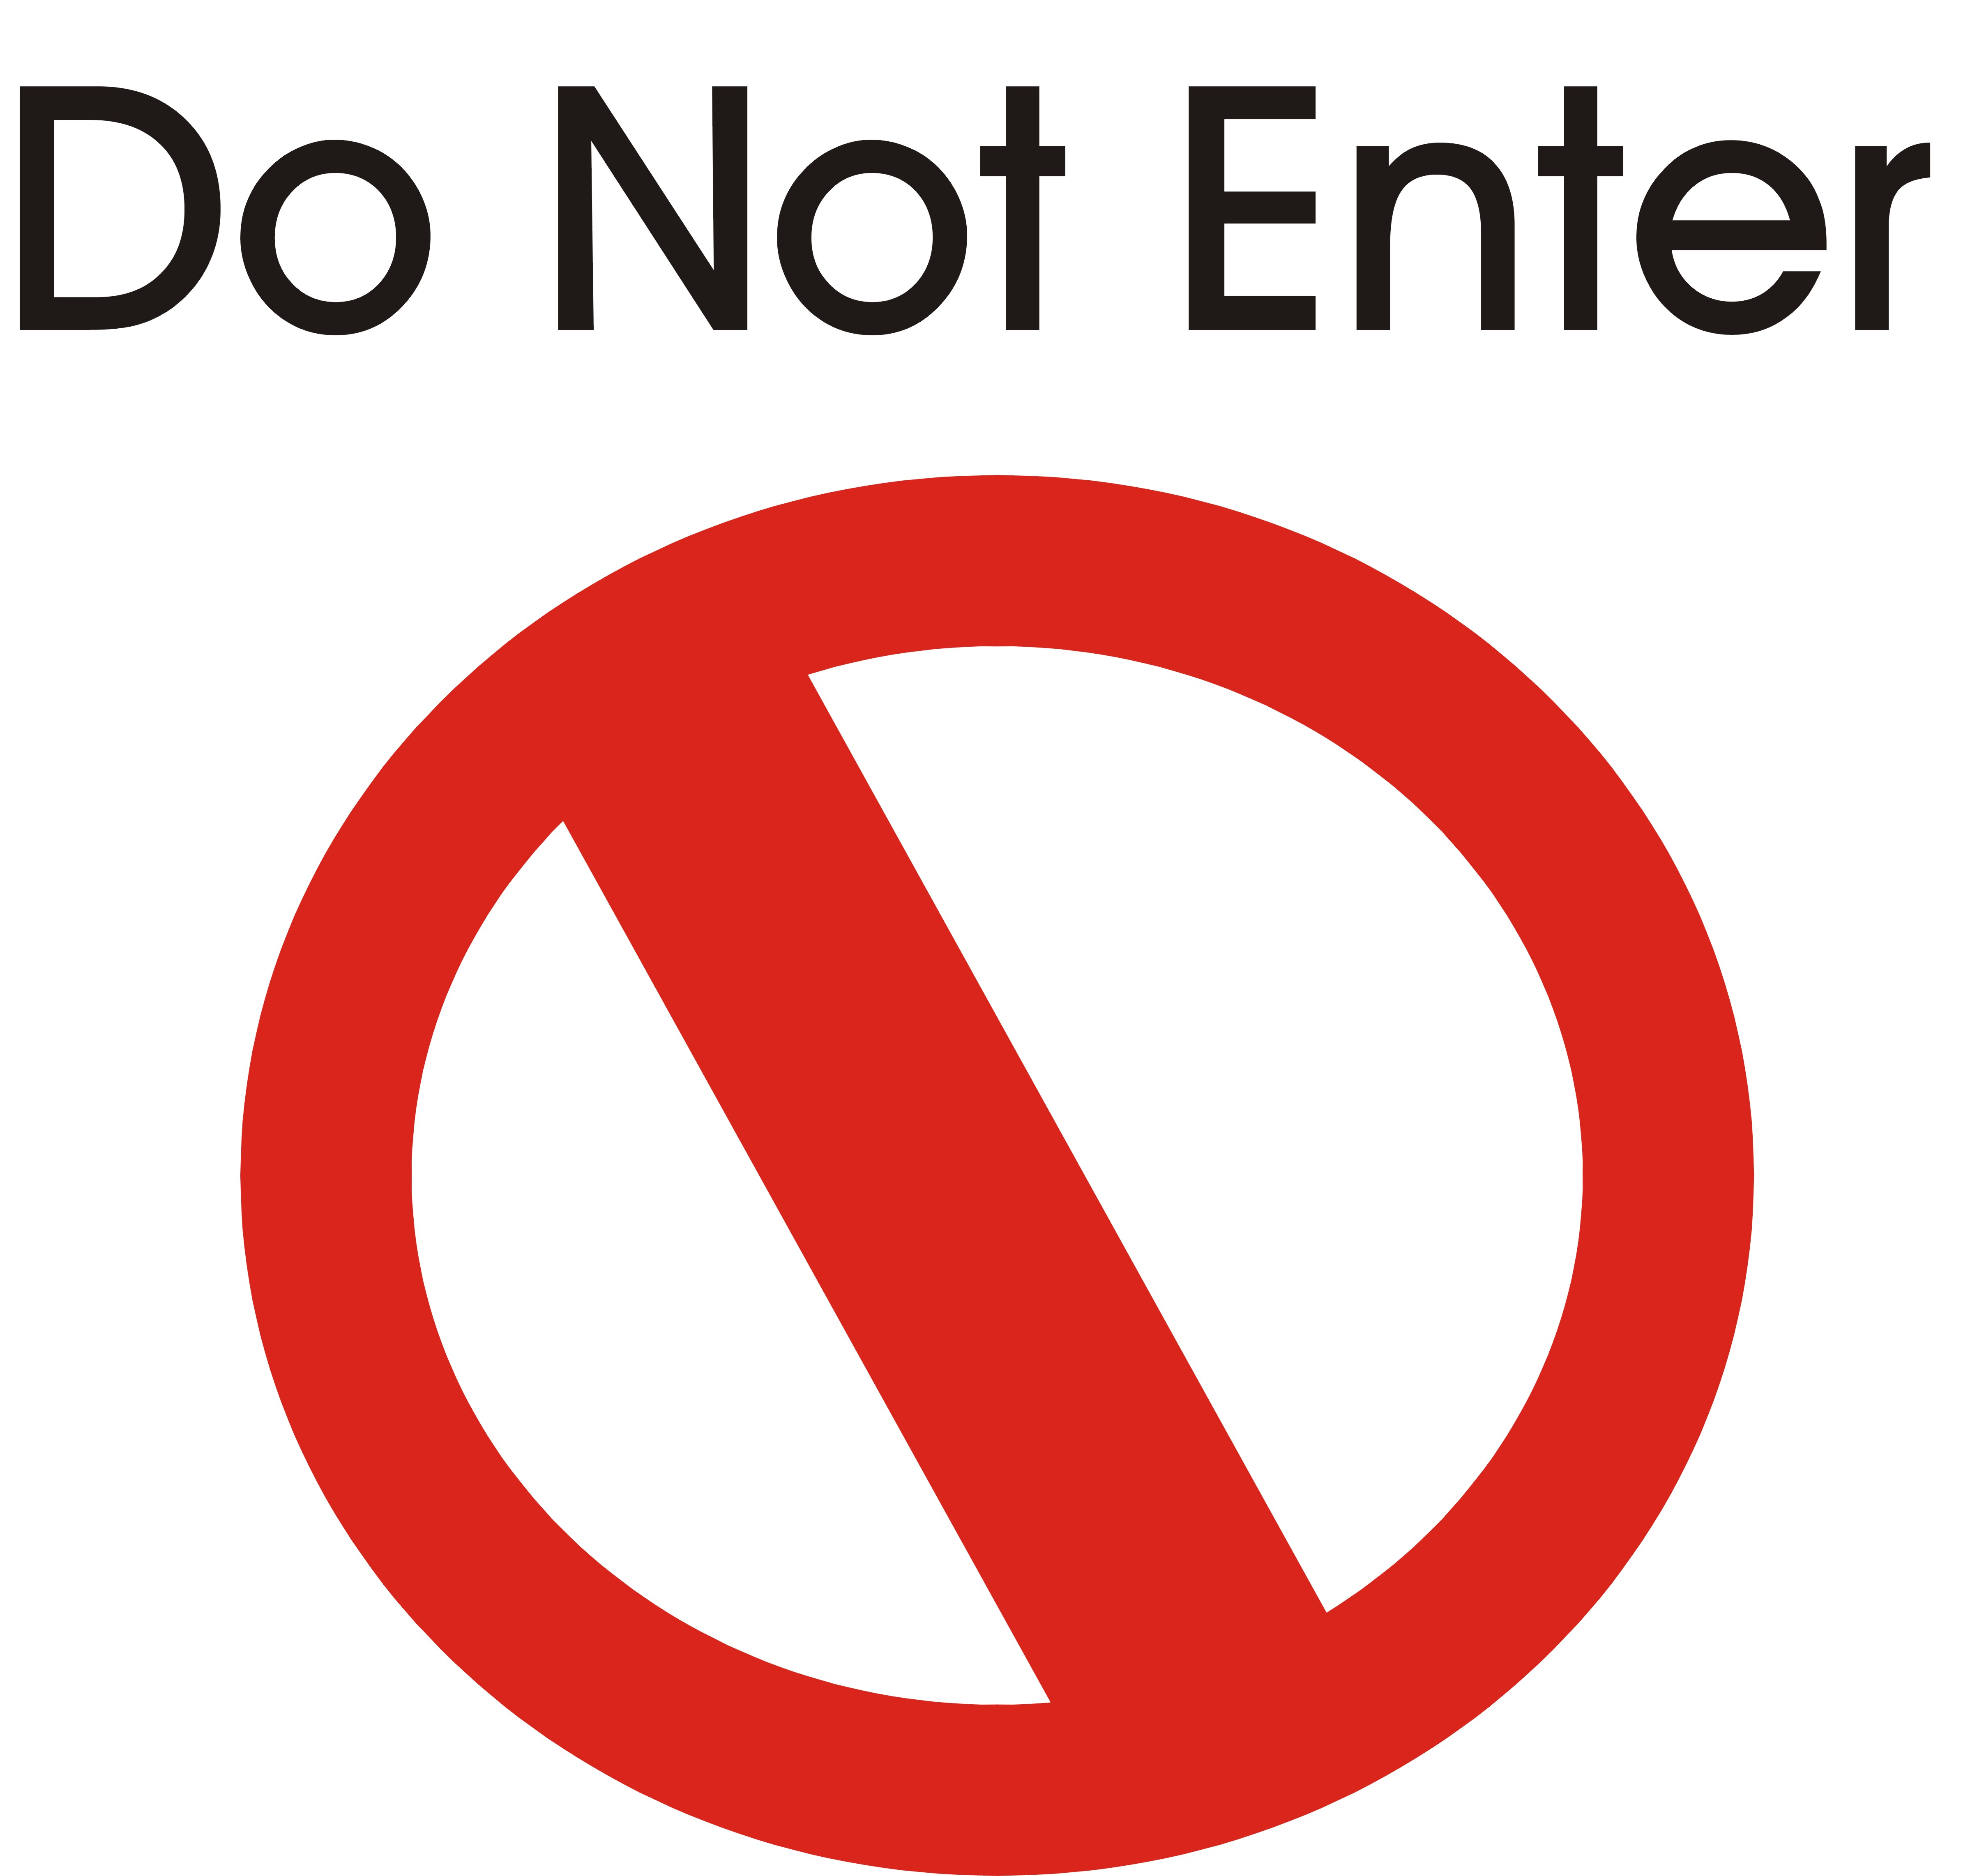 Do No Signs Coloring - ClipArt Best